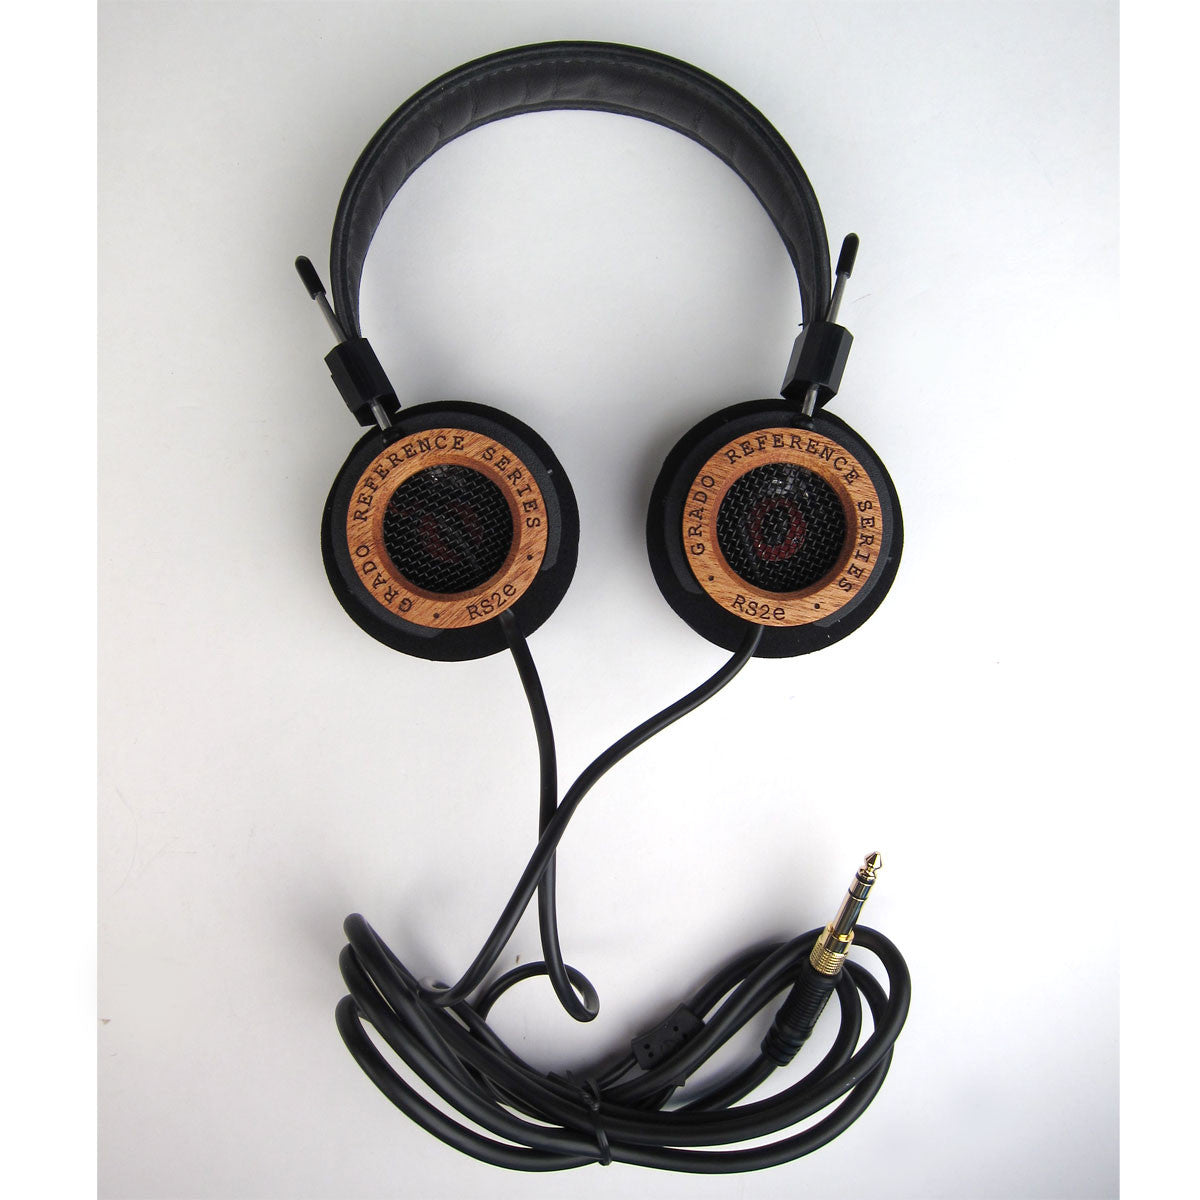 Grado: RS2e Headphones laydown